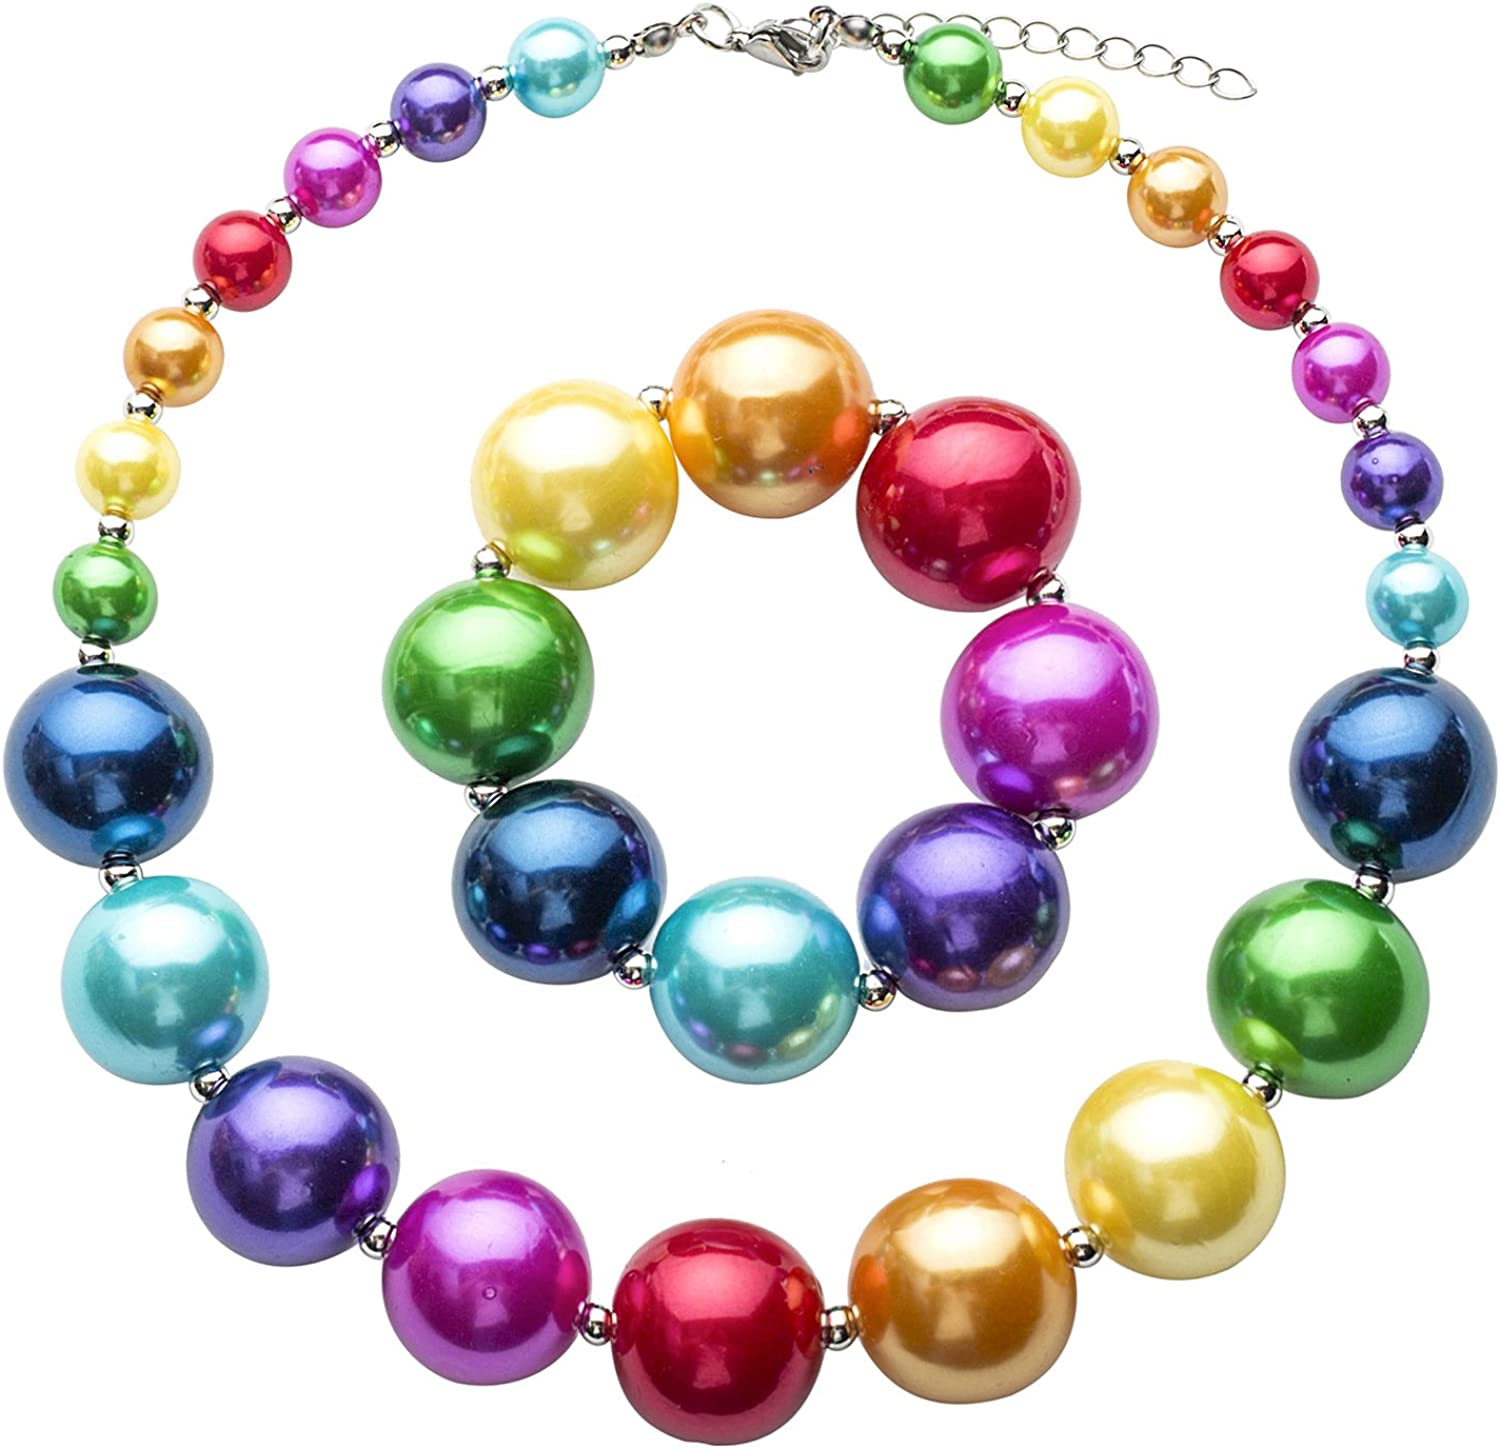 Max 45% OFF Chunky Directly managed store Bubblegum Necklace Merry Beads Fashion Christmas